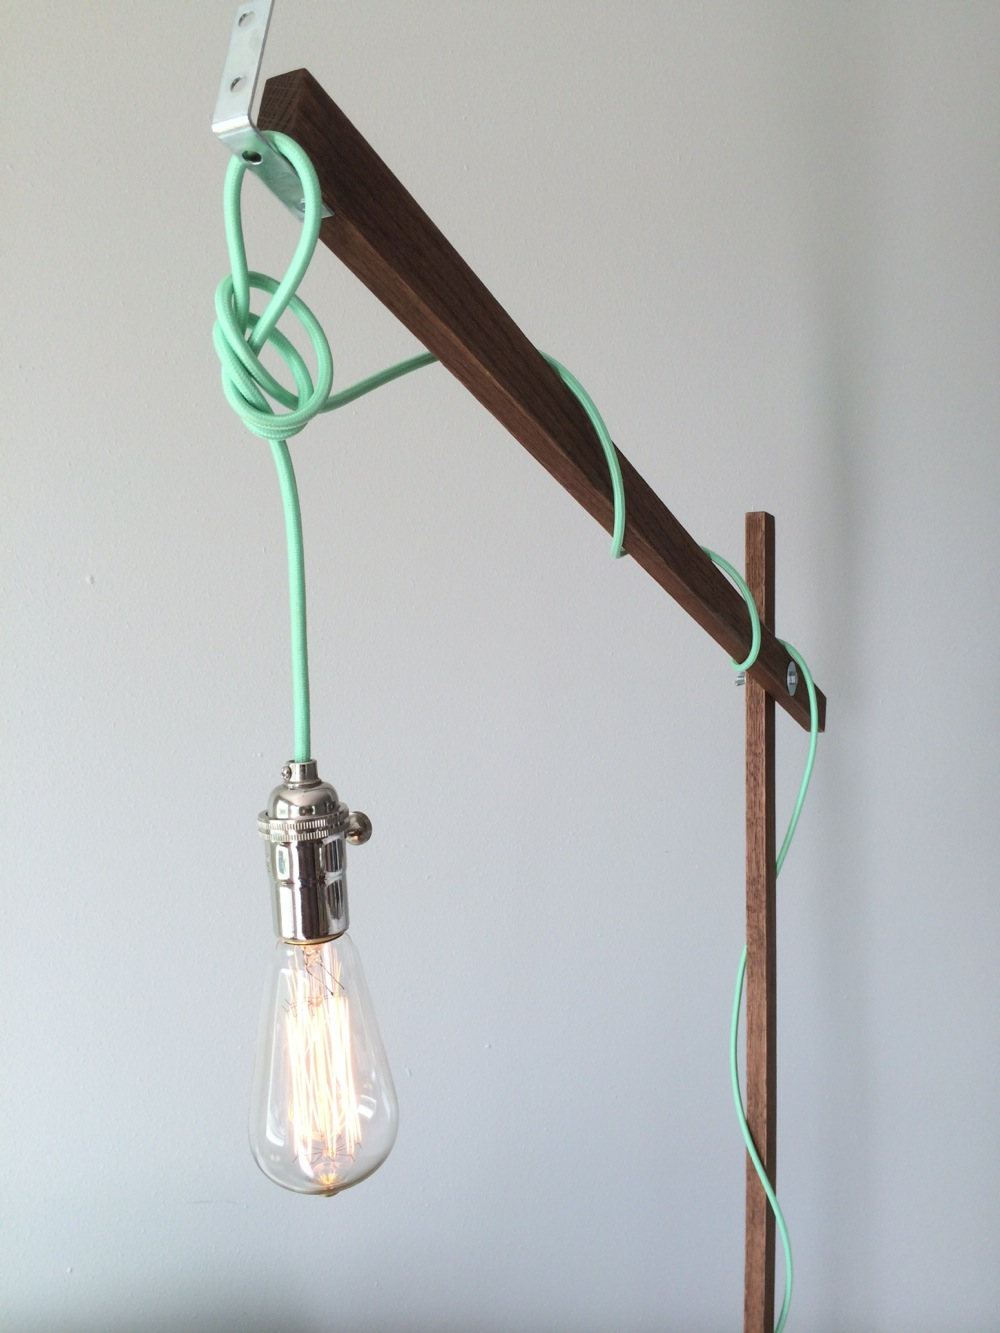 Light up the living room with these 25 diy floor lamps img 4462 solutioingenieria